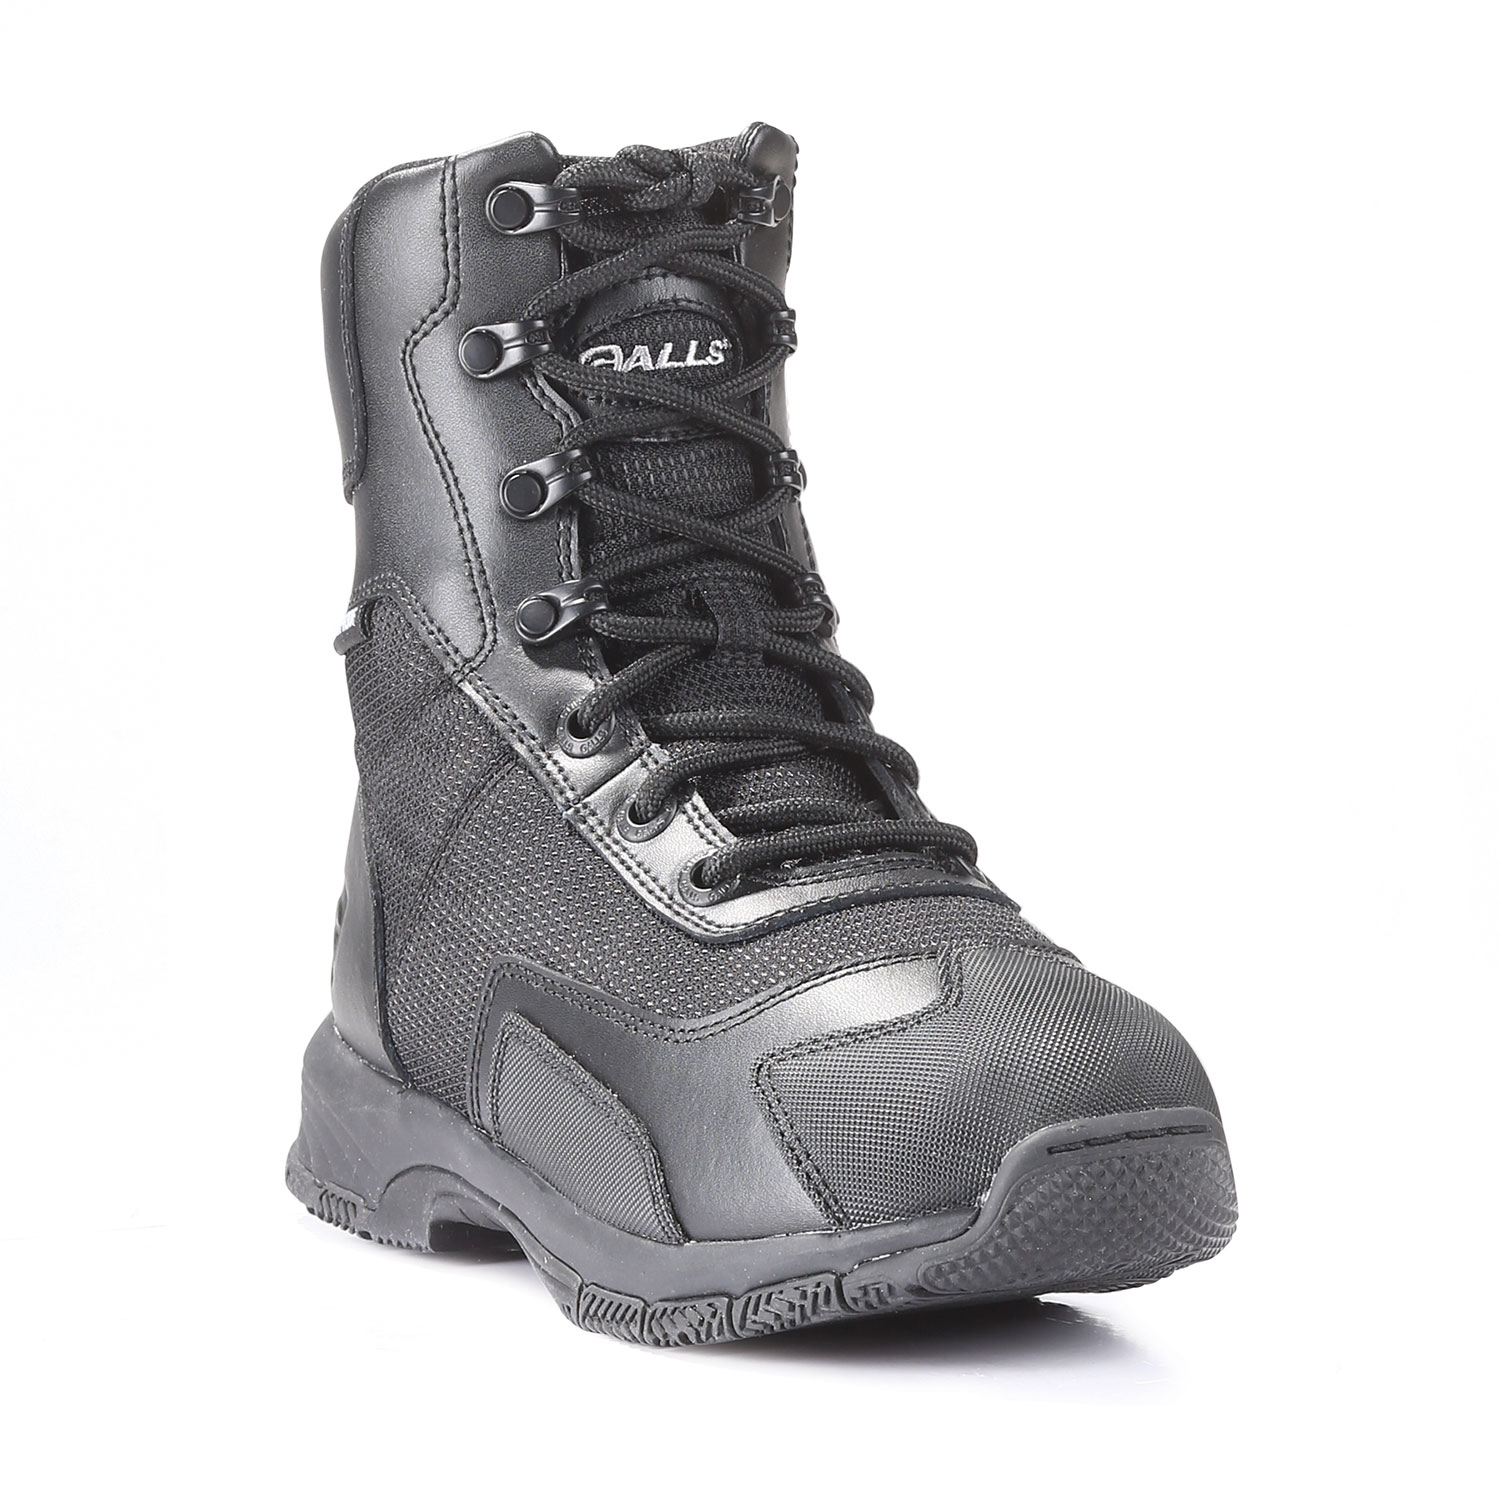 Galls G Tac Athletic 8 Quot Side Zip Waterproof Boot